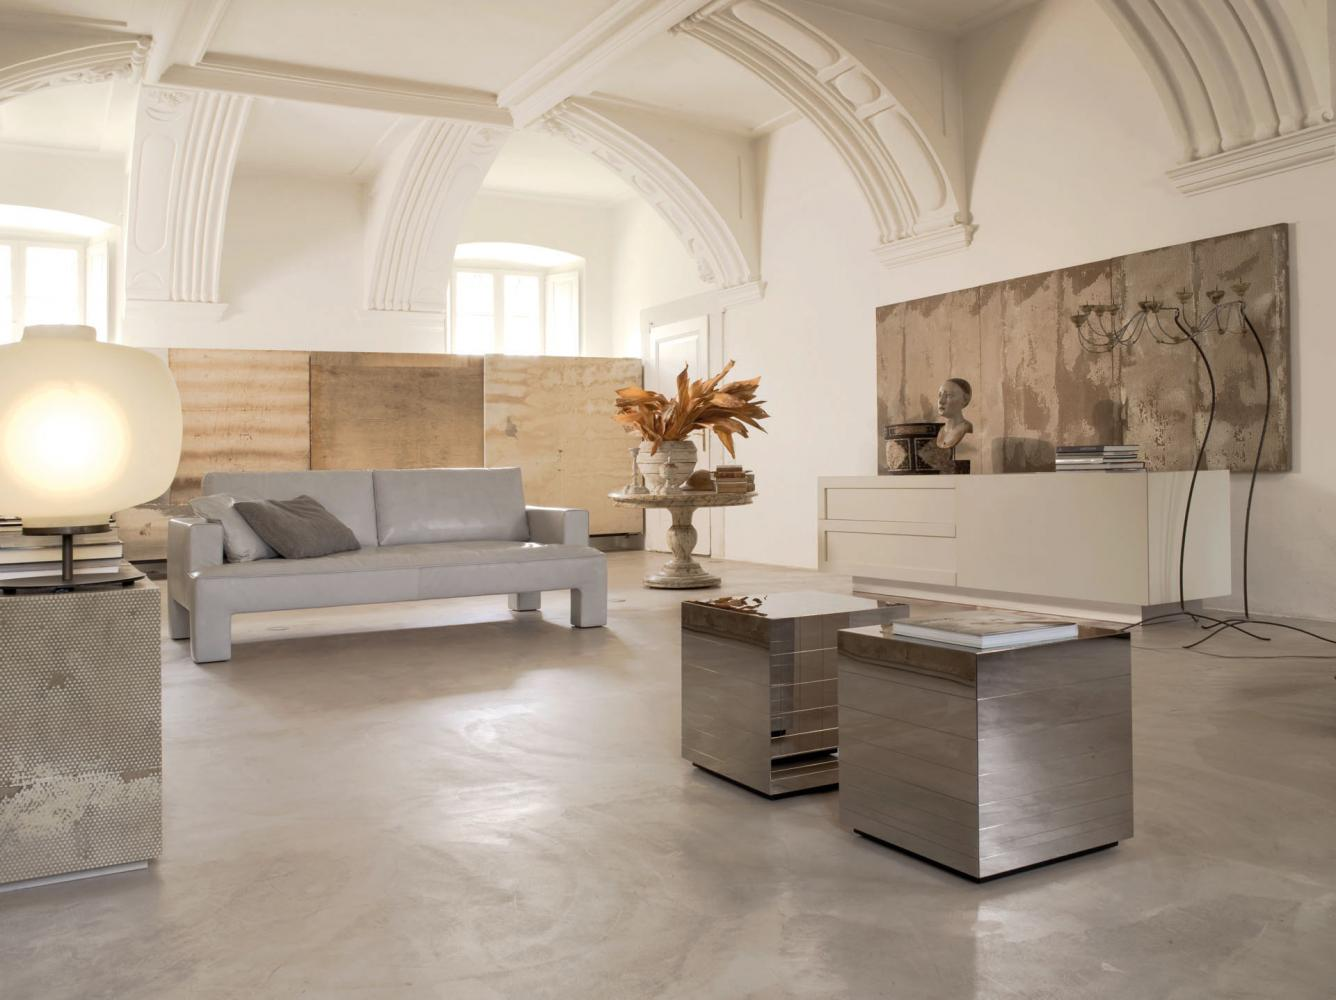 Laurameroni interior design project, trends and inspiration for a luxury villa in Como Lake, modern and custom-made furnishing